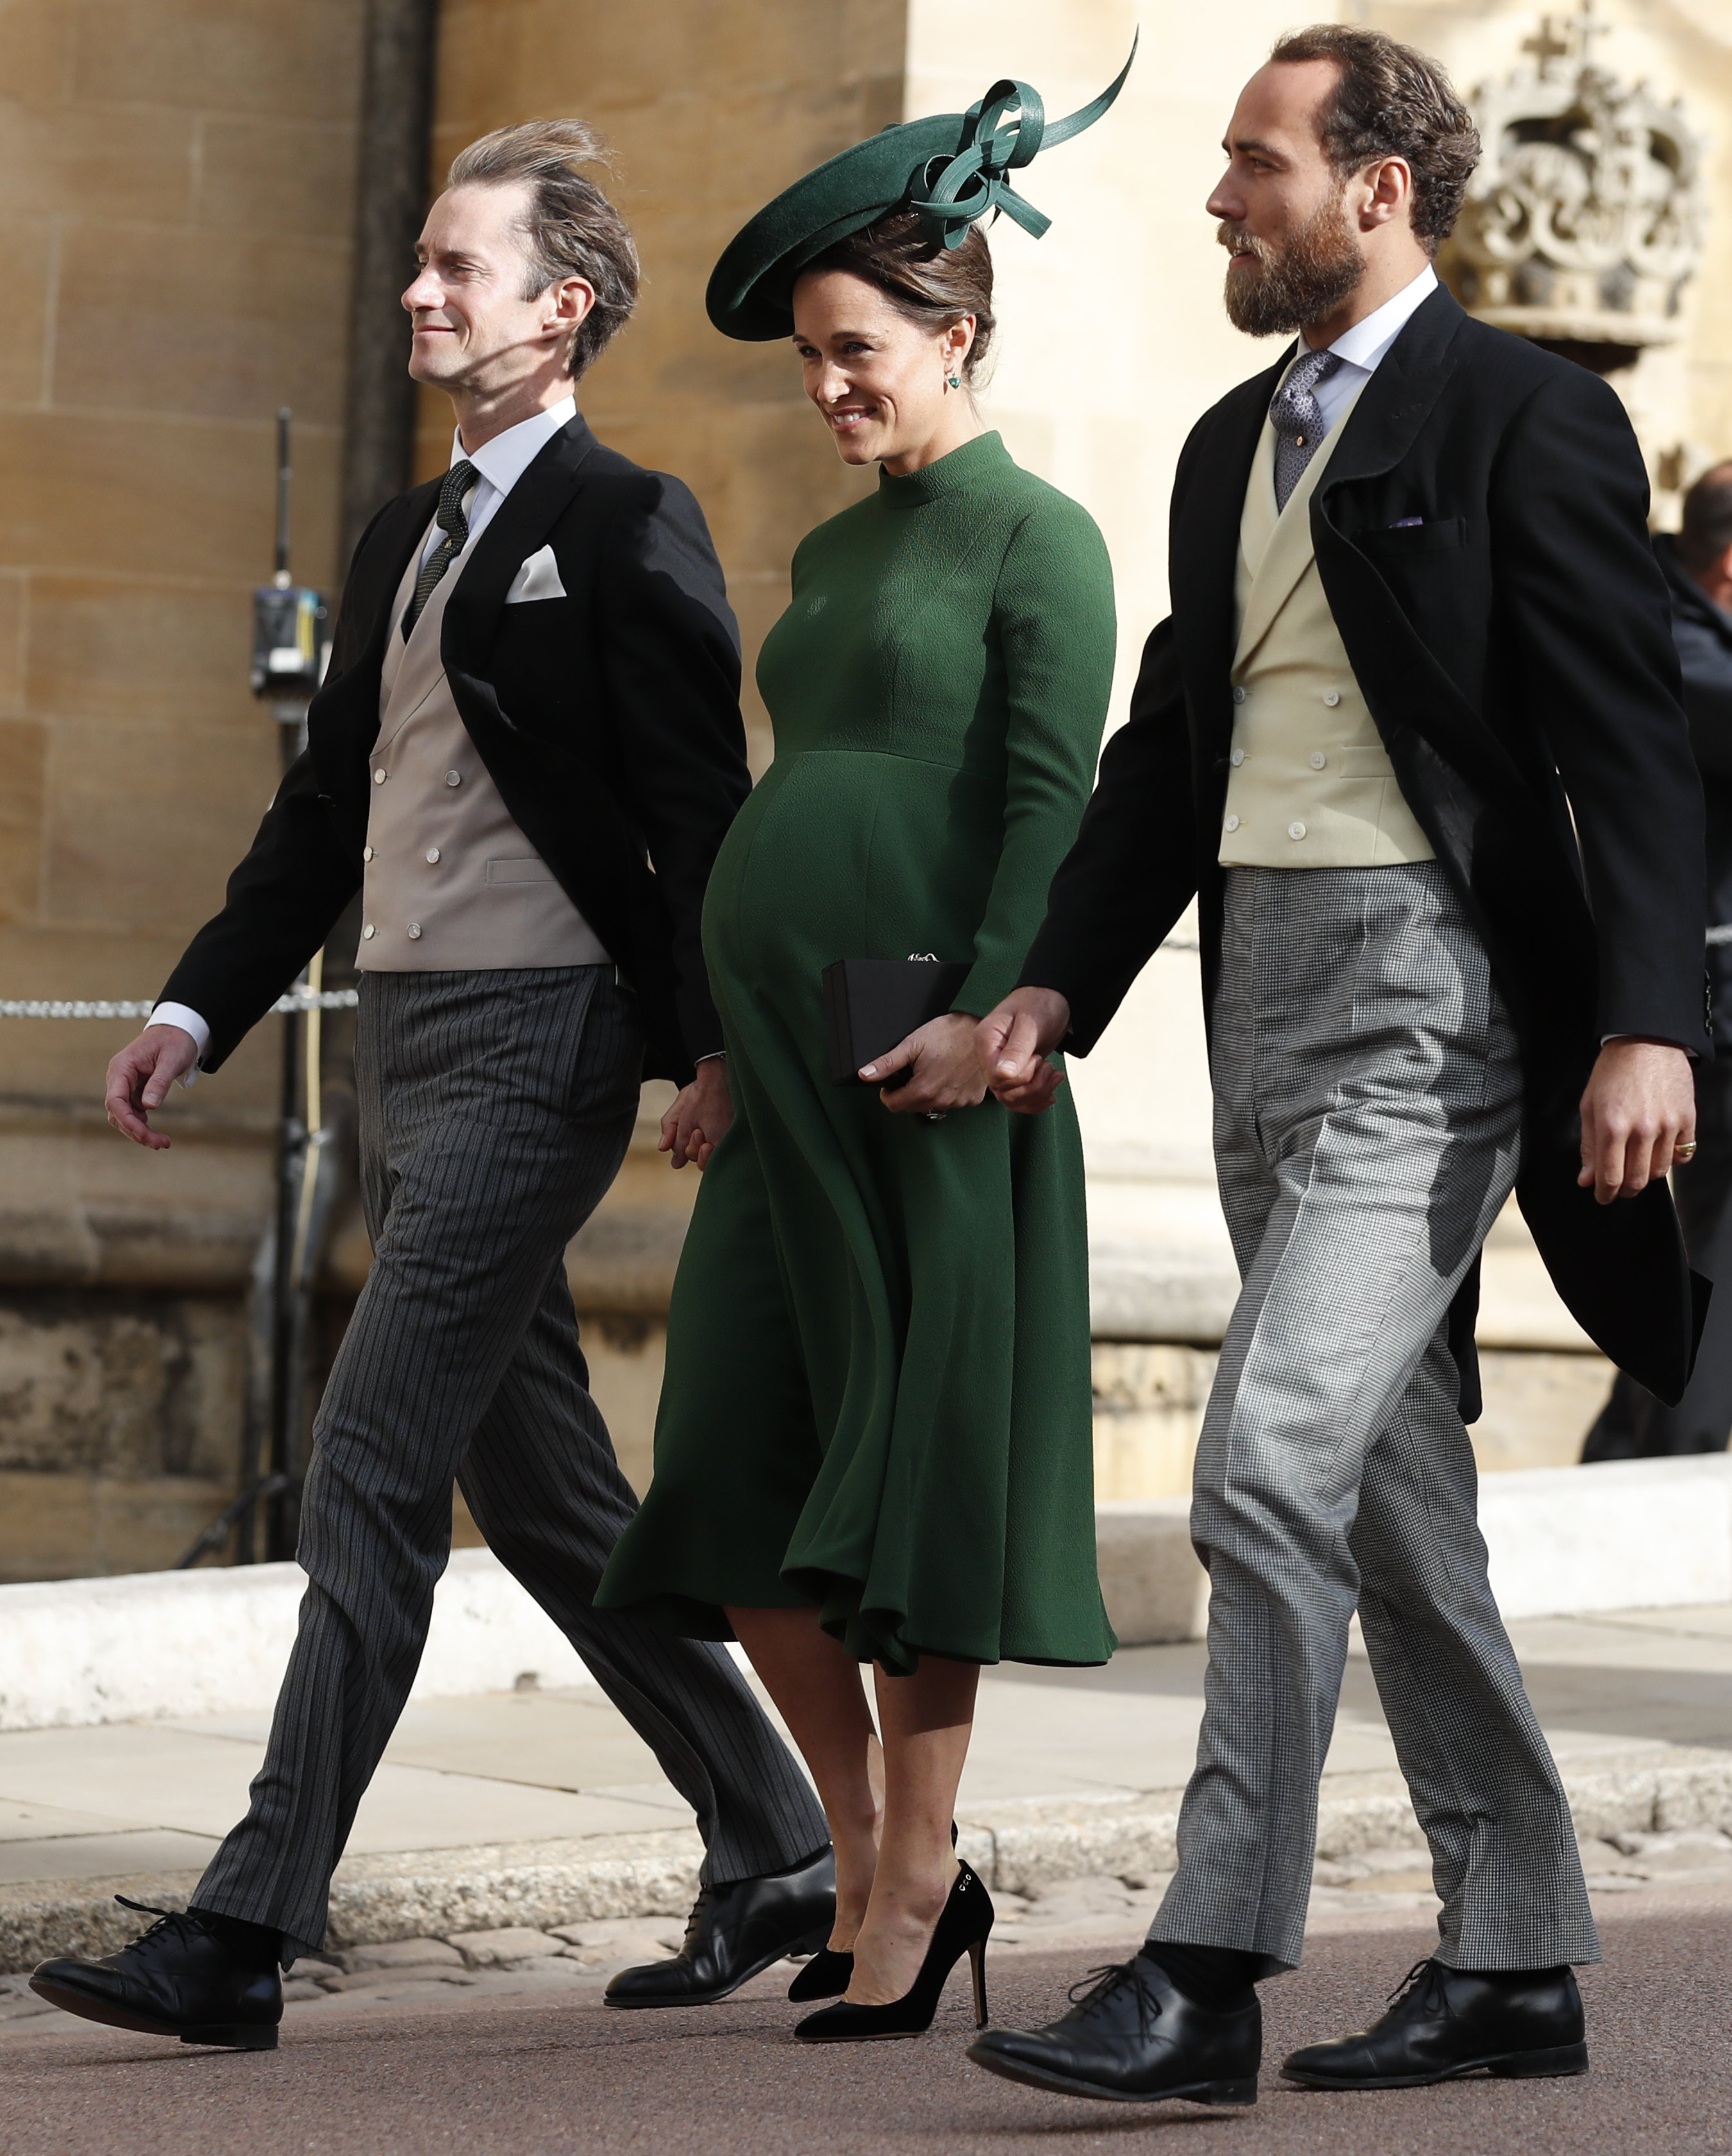 James Middleton, Pippa Middleton and James Matthews arrive for the wedding of Princess Eugenie of York and Jack Brooksbank. | Source: Getty Images